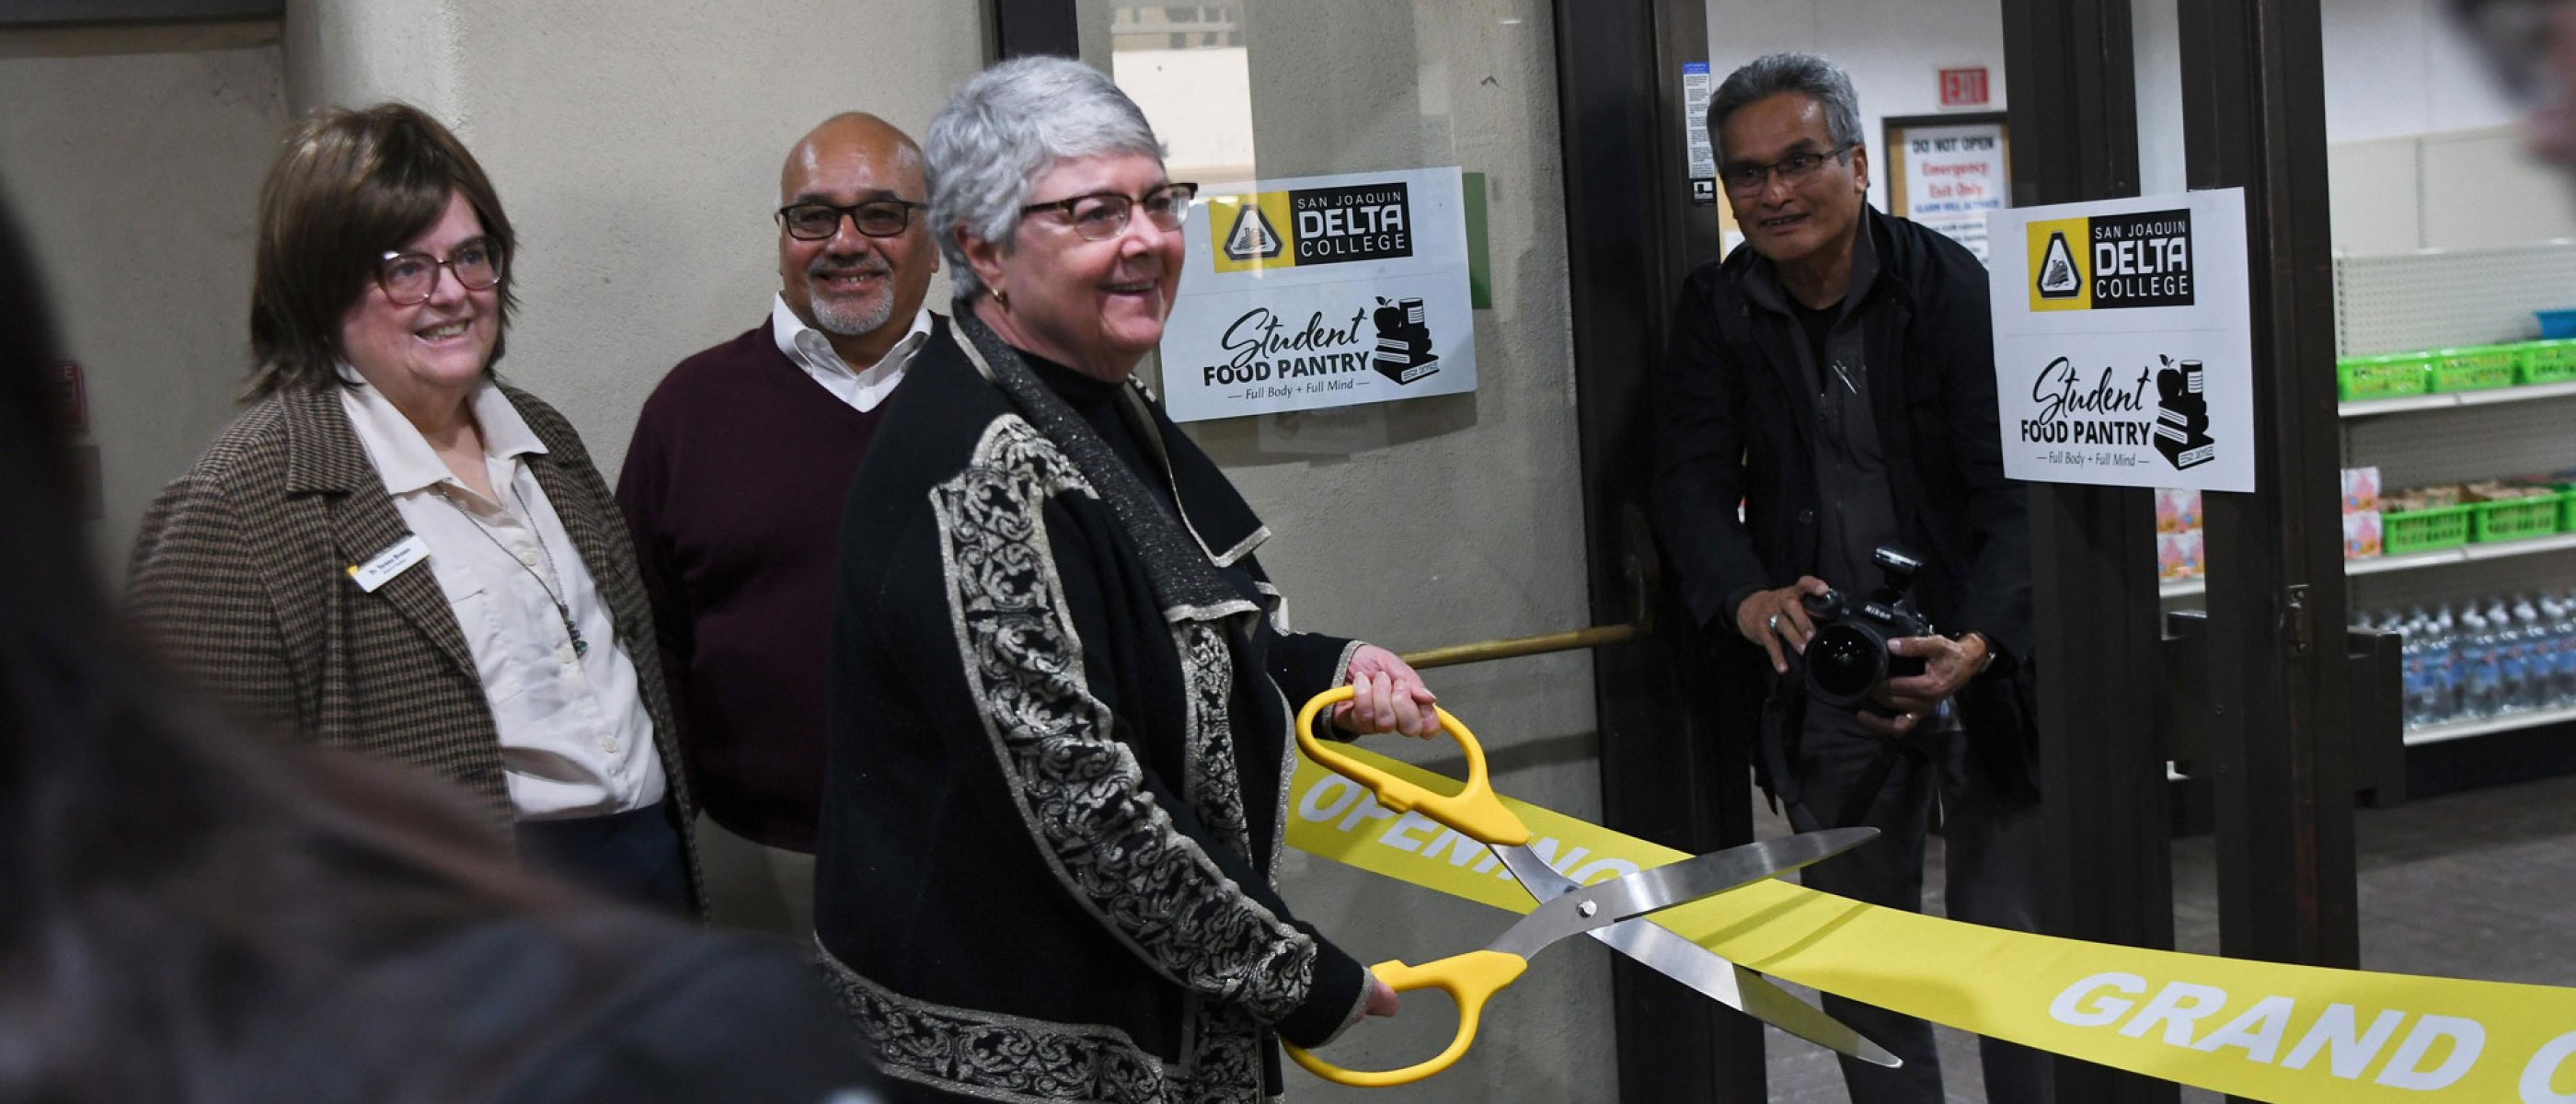 Kathy Hart cuts the ribbon at the Food Pantry Grand Opening